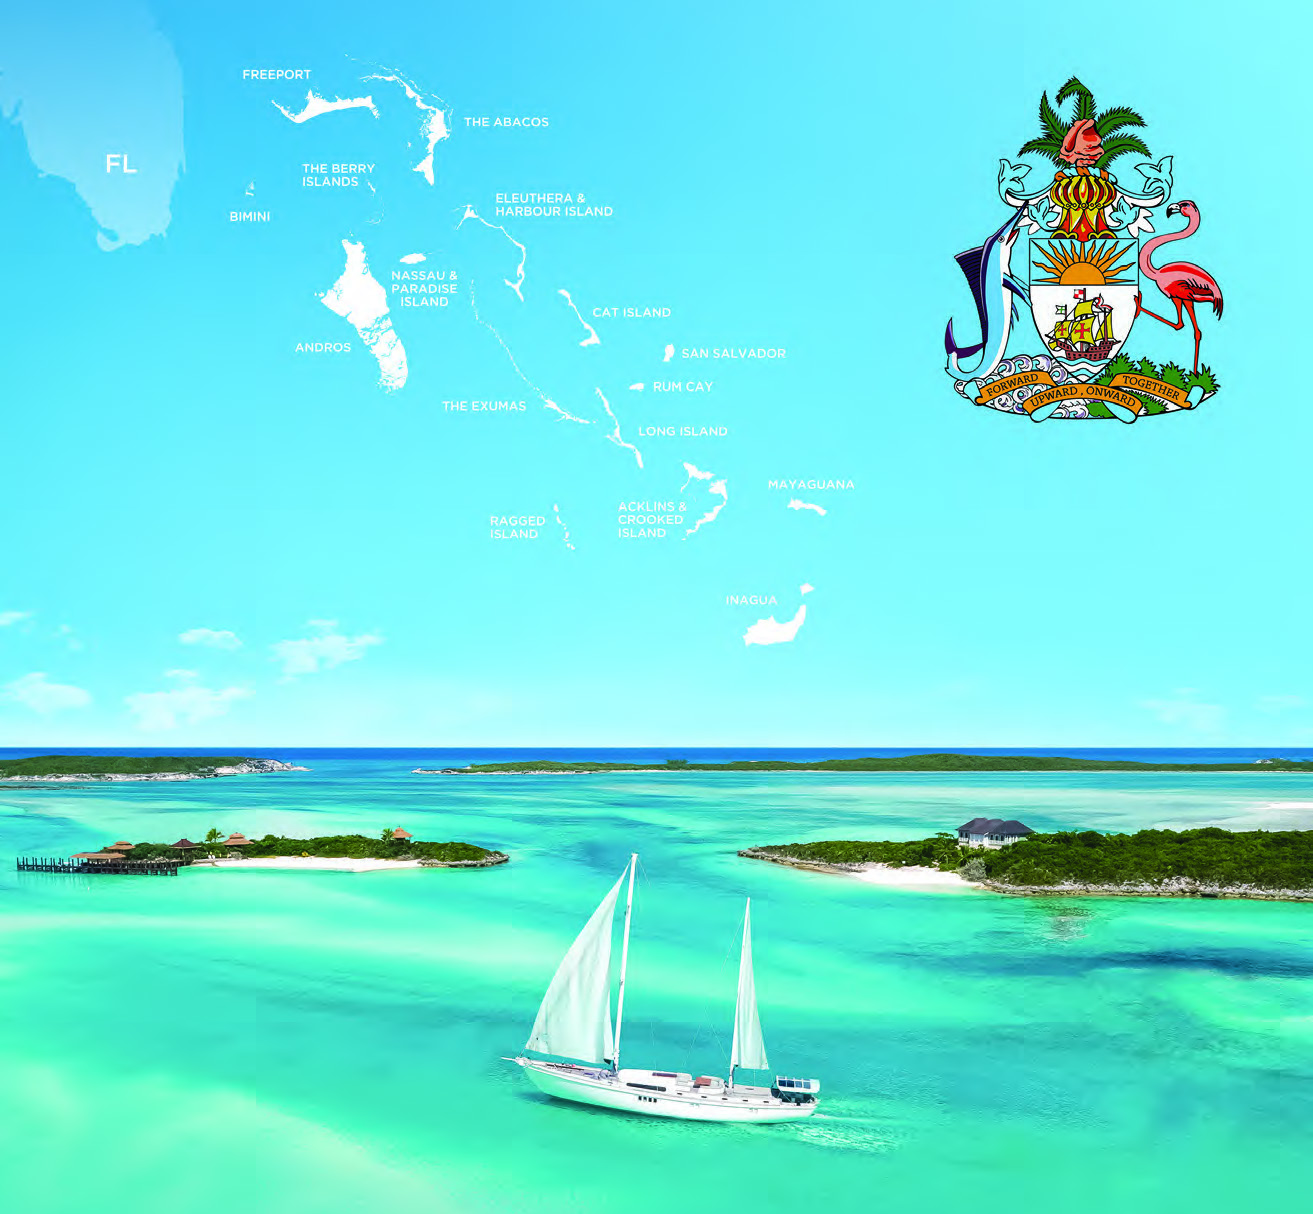 Fairport Yacht Support 09-2020 Advisory to Master, Bahamas cruising procedures including pe-departure COVID-19 testing requirements